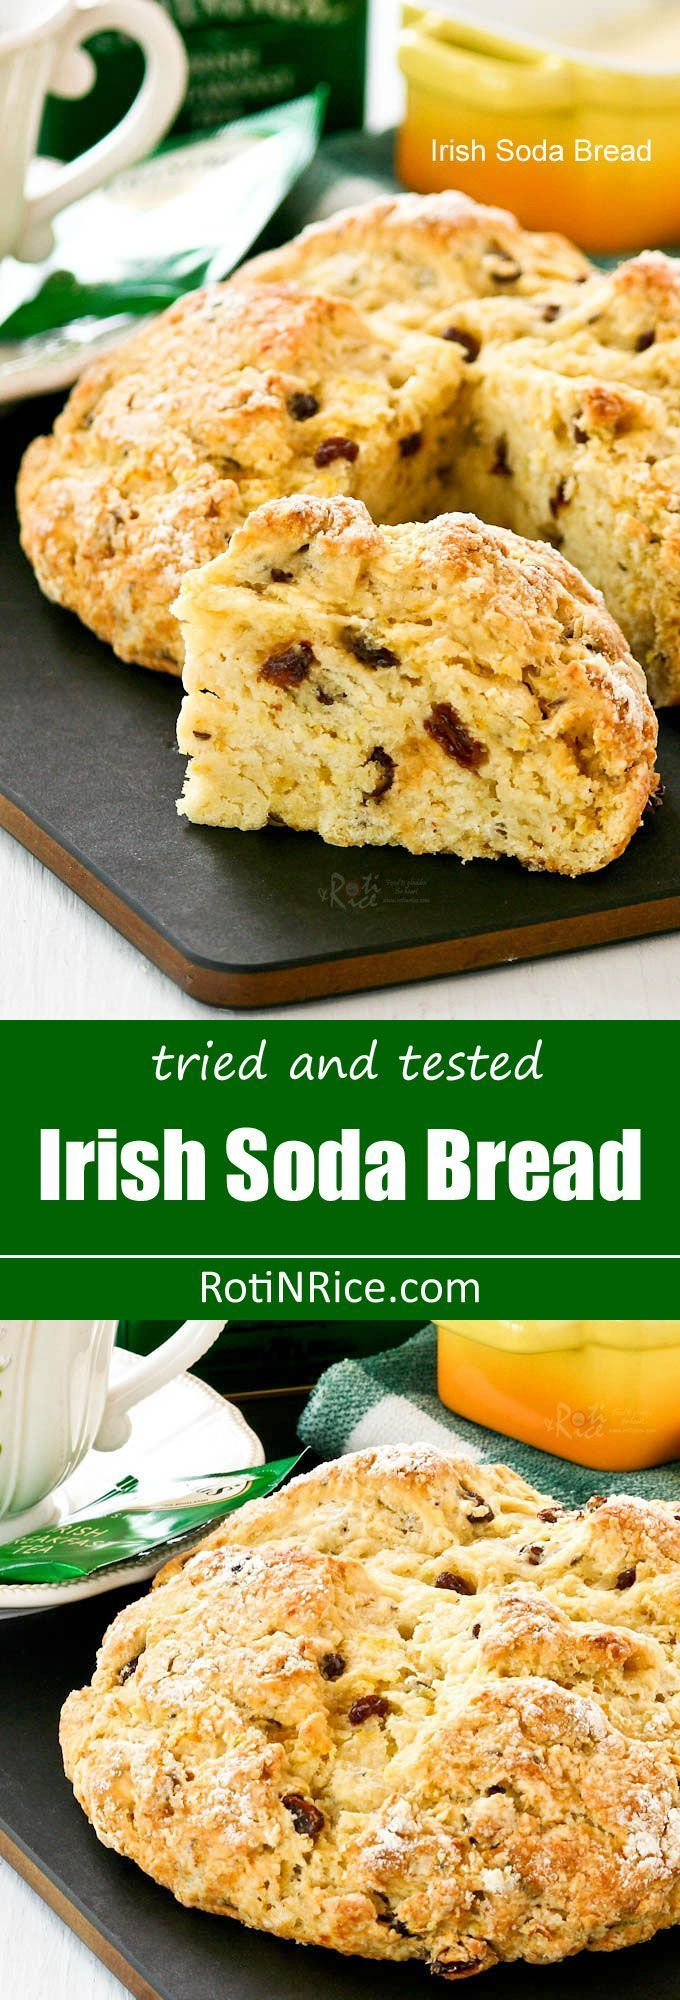 Tried and tested easy to prepare Irish Soda Bread flavored with caraway seeds, orange zest, and raisins. Delicious served with corned beef and cabbage. | http://RotiNRice.com